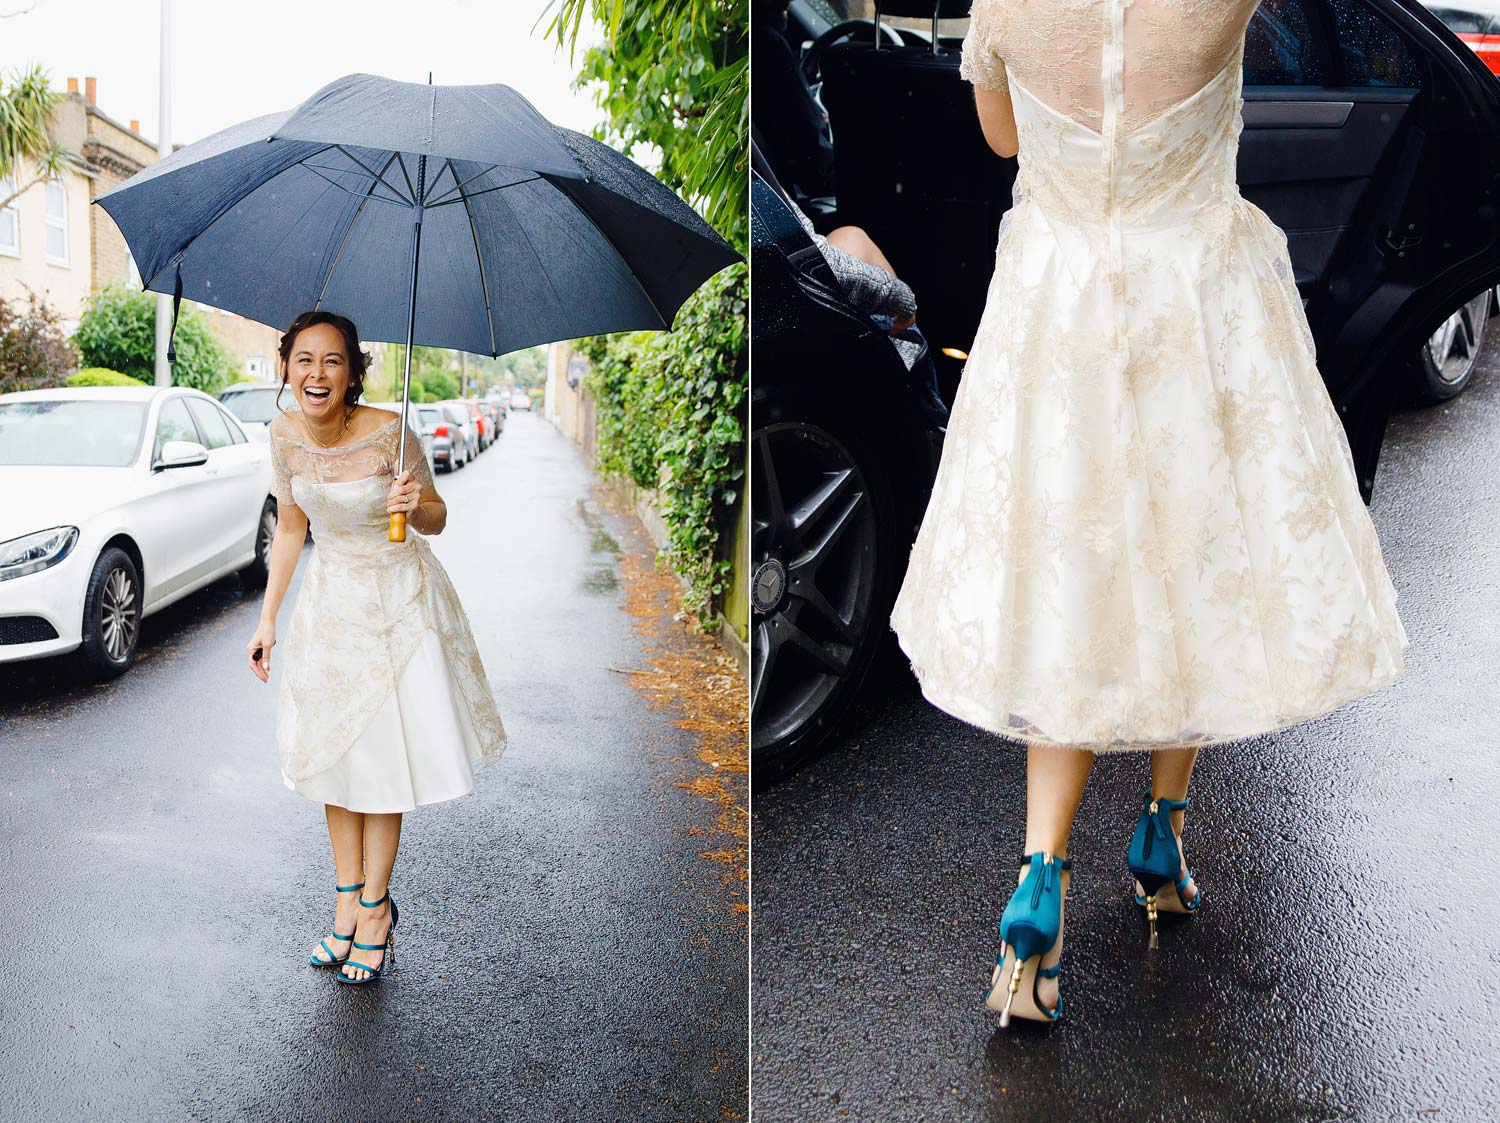 A bride laughs as she gets into the car in the rain wearing teal Kurt Geiger shoes